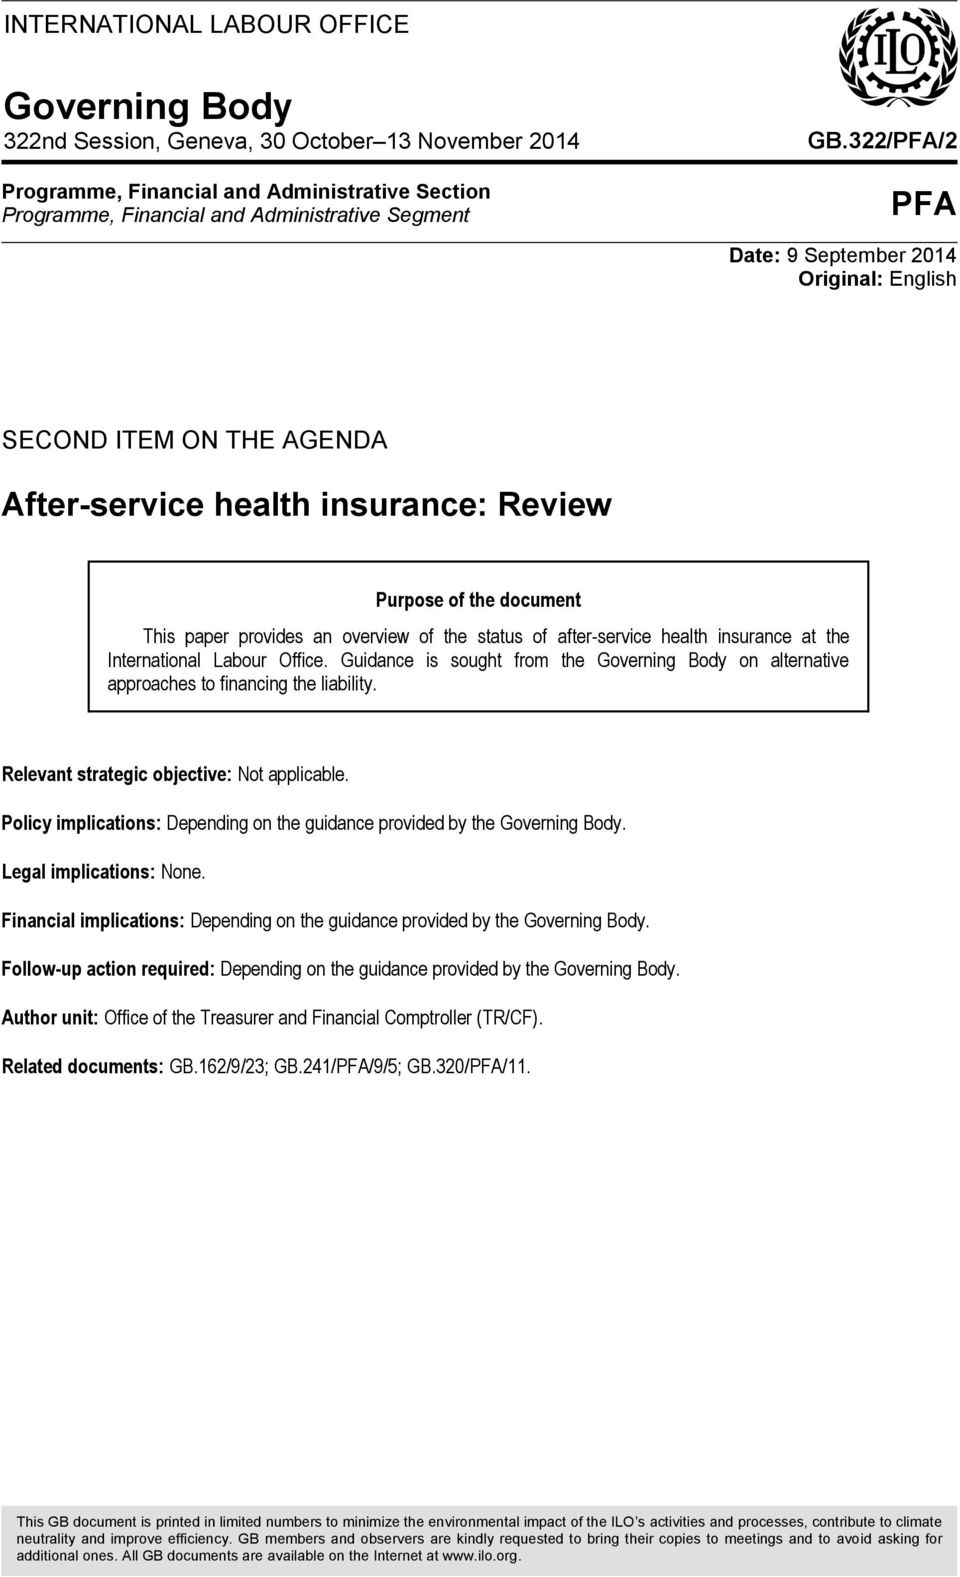 after-service health insurance at the International Labour Office. Guidance is sought from the Governing Body on alternative approaches to financing the liability.